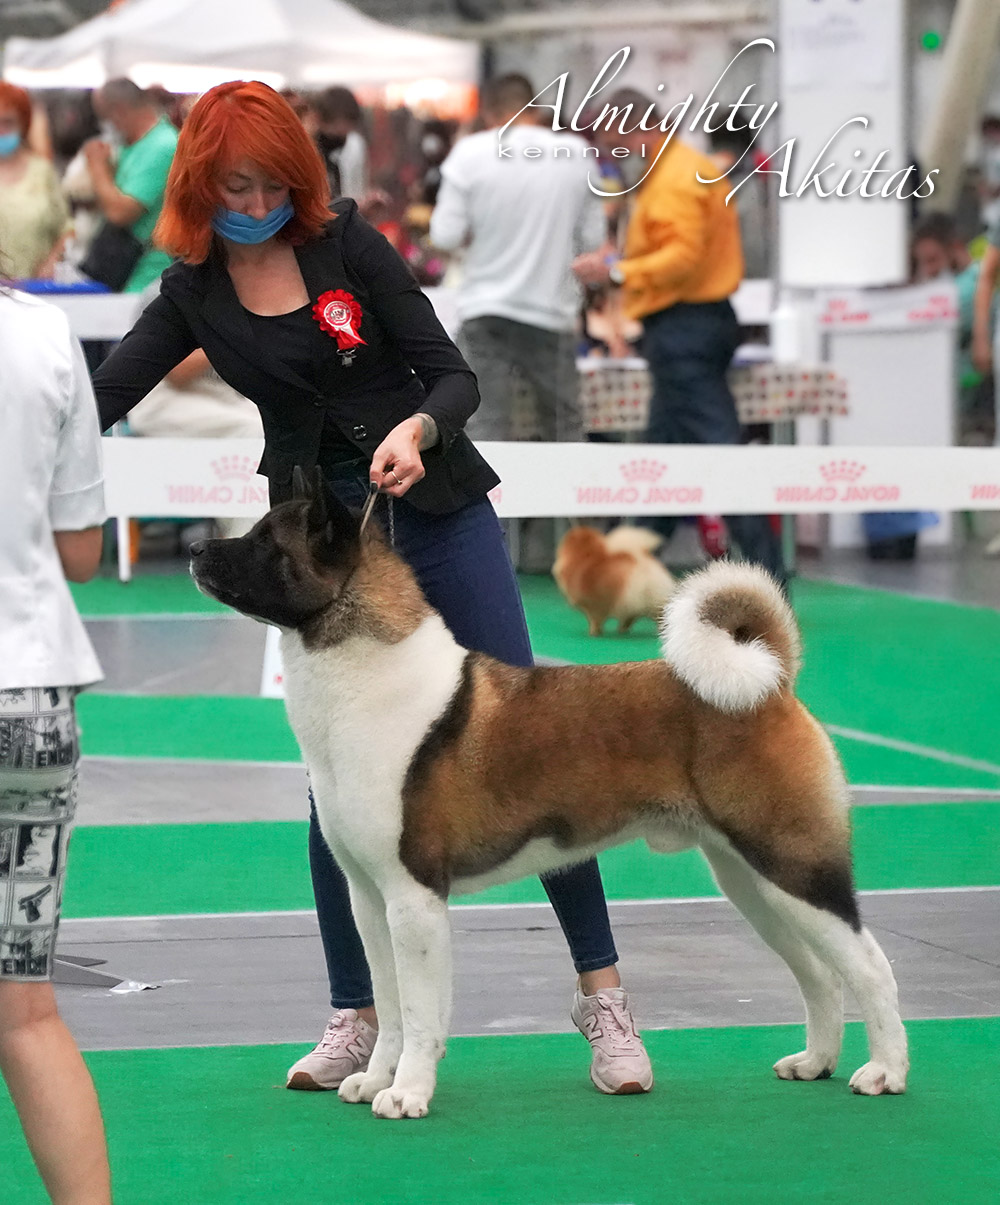 American akita ALL FOR ALMIGHTY BEFORE HEAVEN